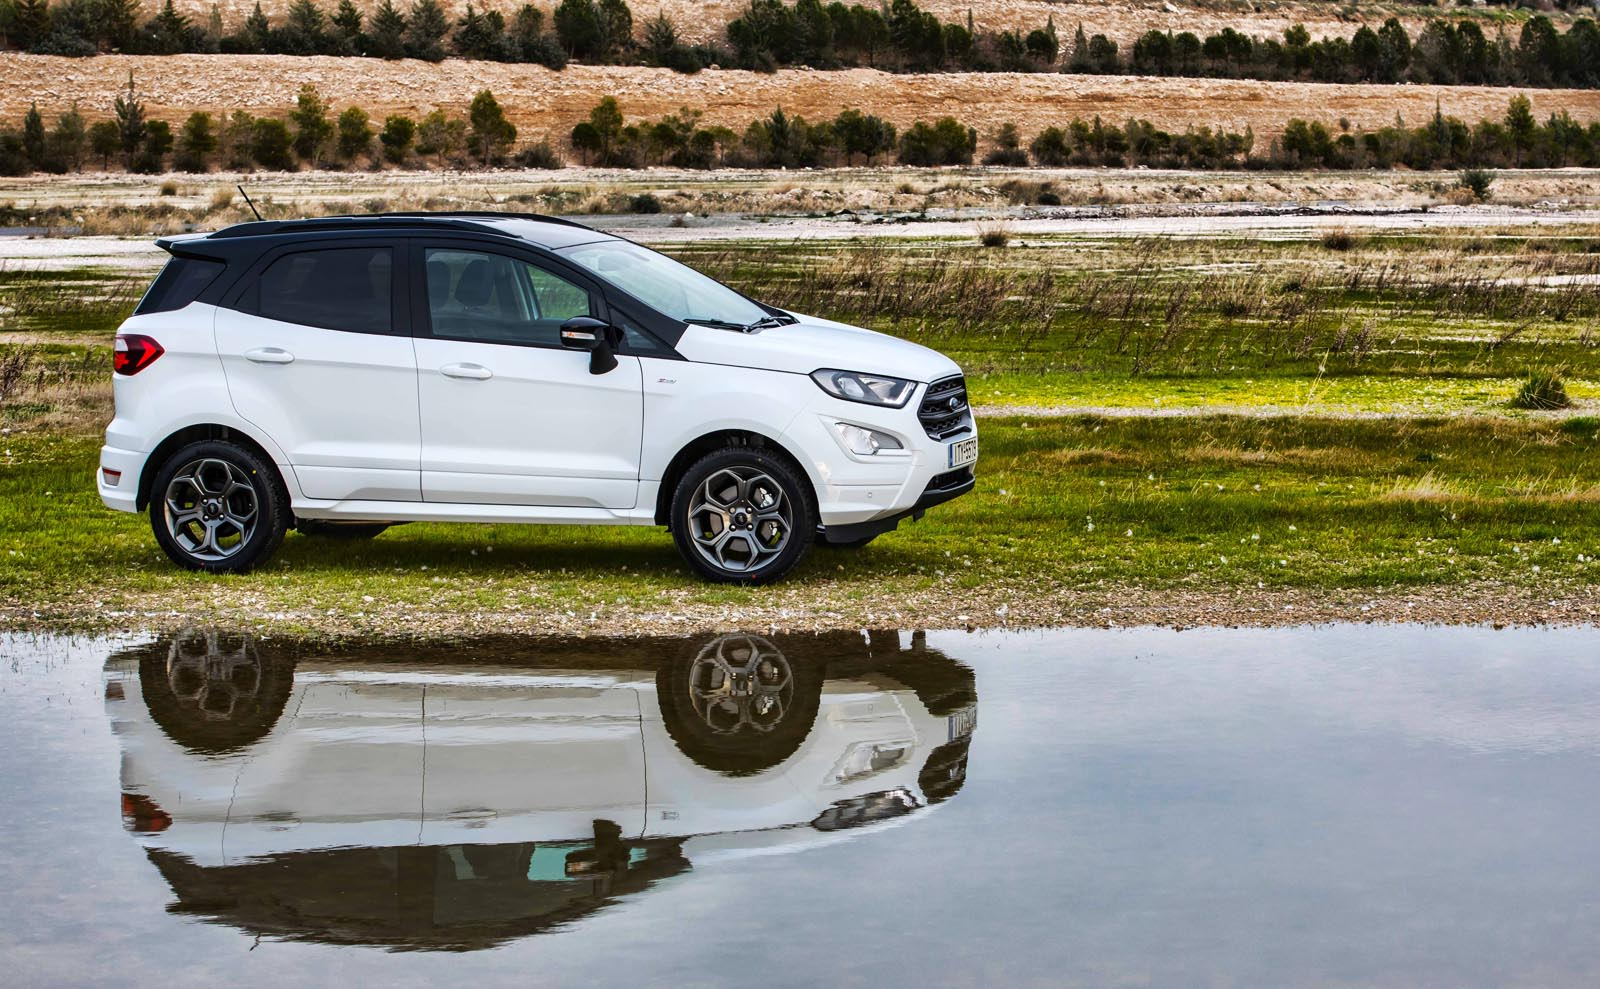 Photo of Ford Ecosport 1.0 Ecoboost 140 PS [test drive]